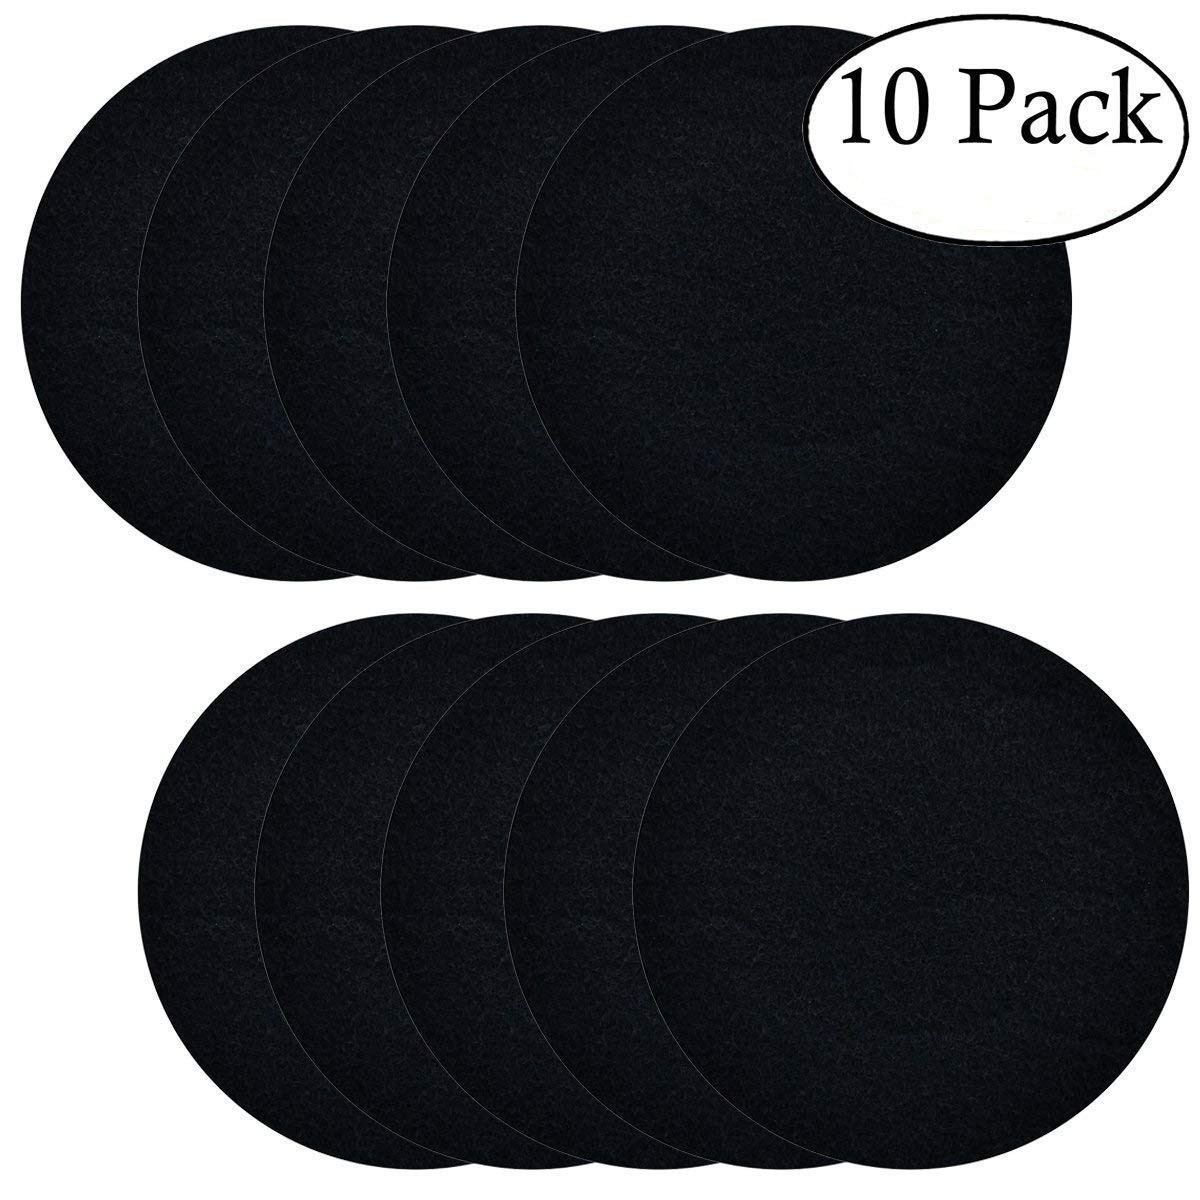 10 Pack Compost Bin Filters Activated Carbon Kitchen Compost Filters Replacement Filters, 7.25 inches Round KisSealed Compost Bins-10